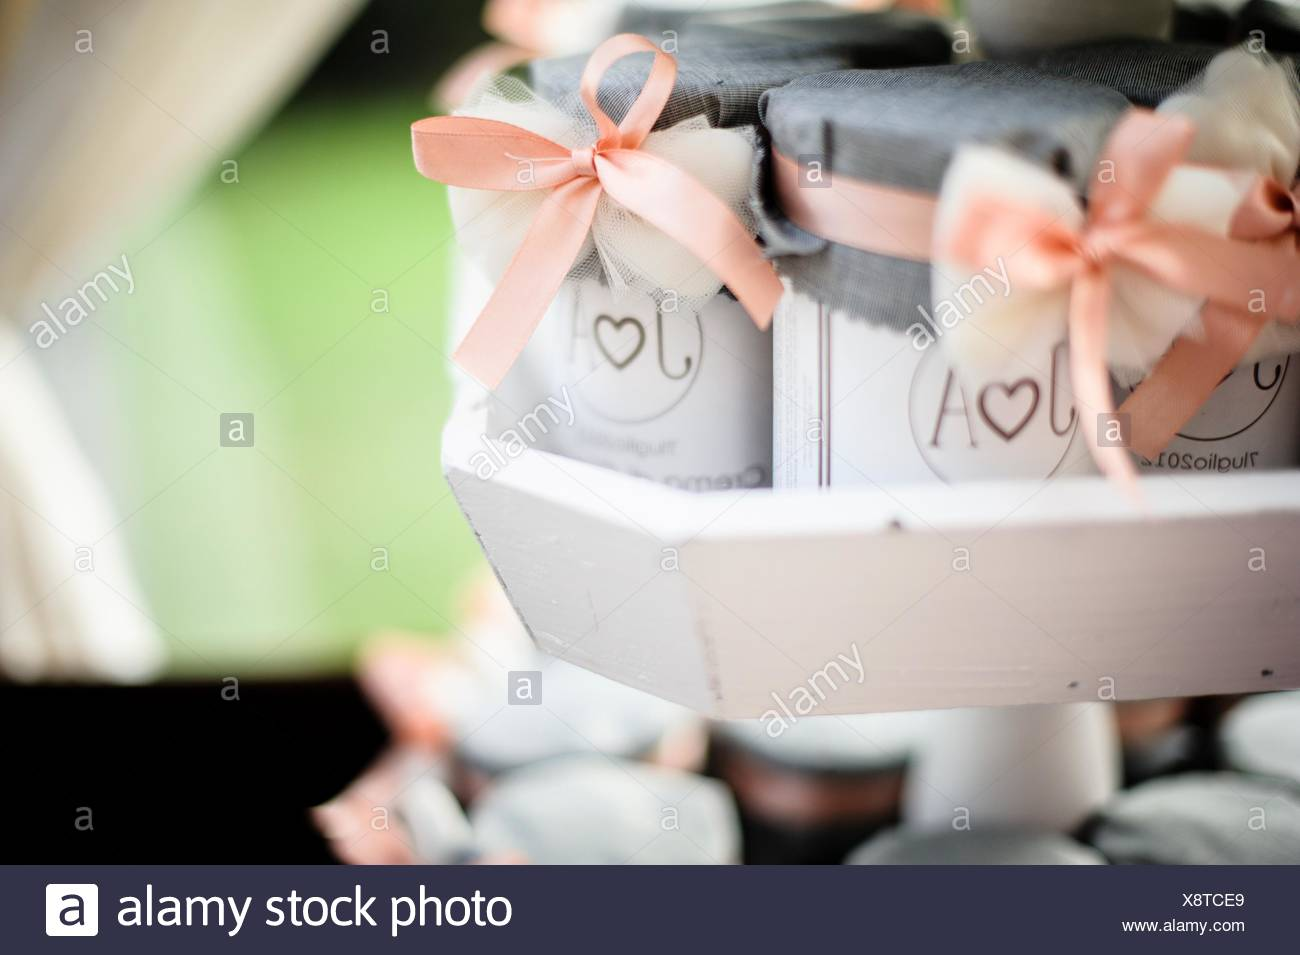 Jam Jars Wedding Favors Stock Photos & Jam Jars Wedding Favors Stock ...